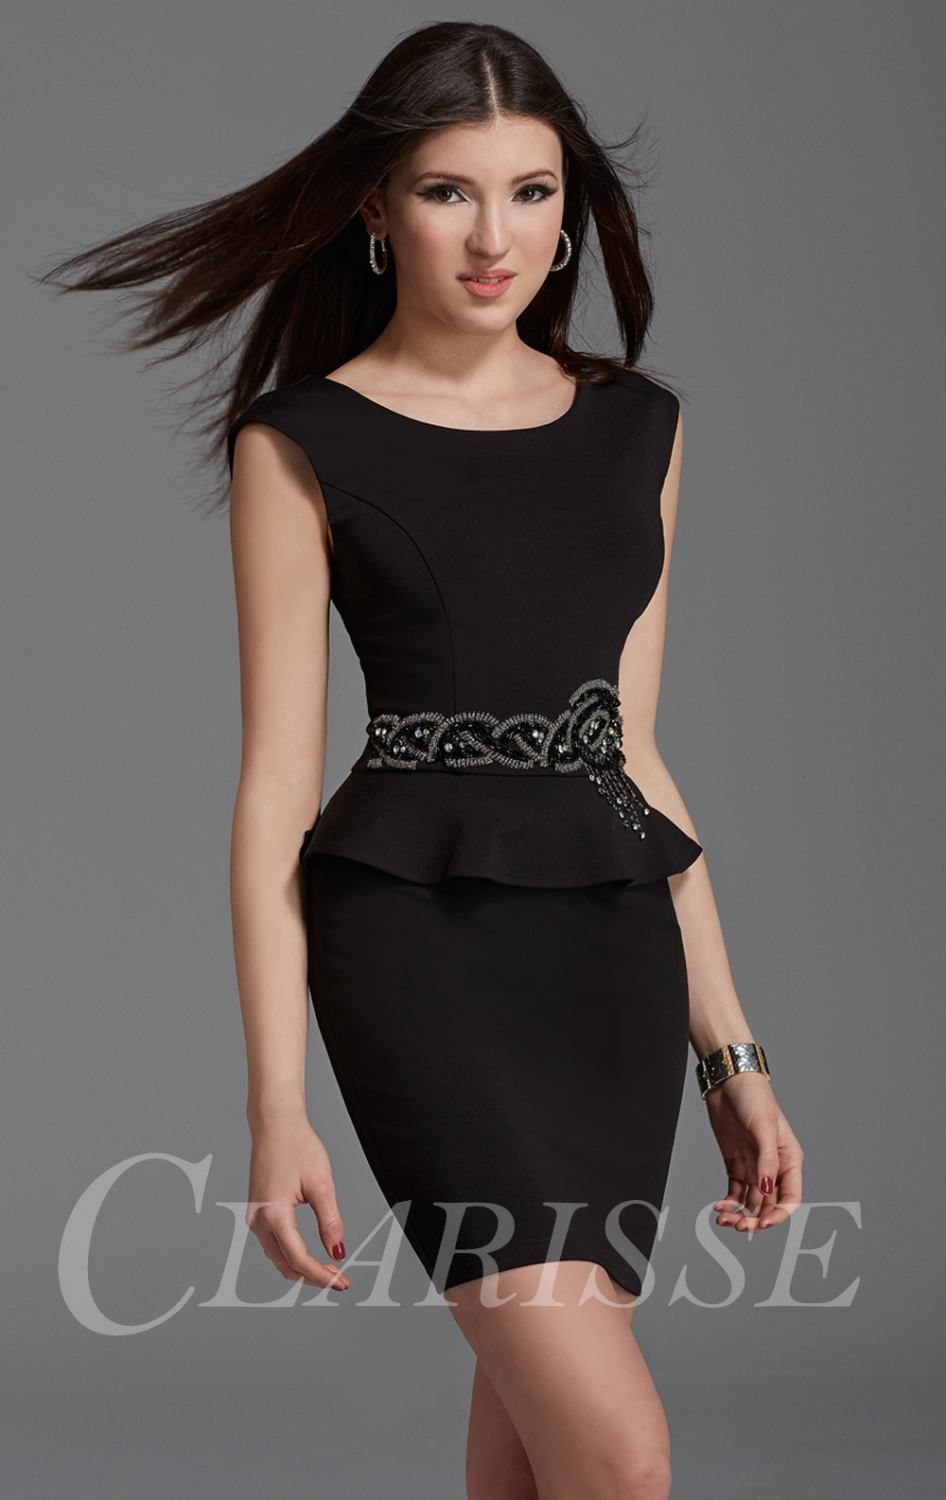 Clarisse 357 Dress - MissesDressy.com | Bodycon Party Dresses (short ...